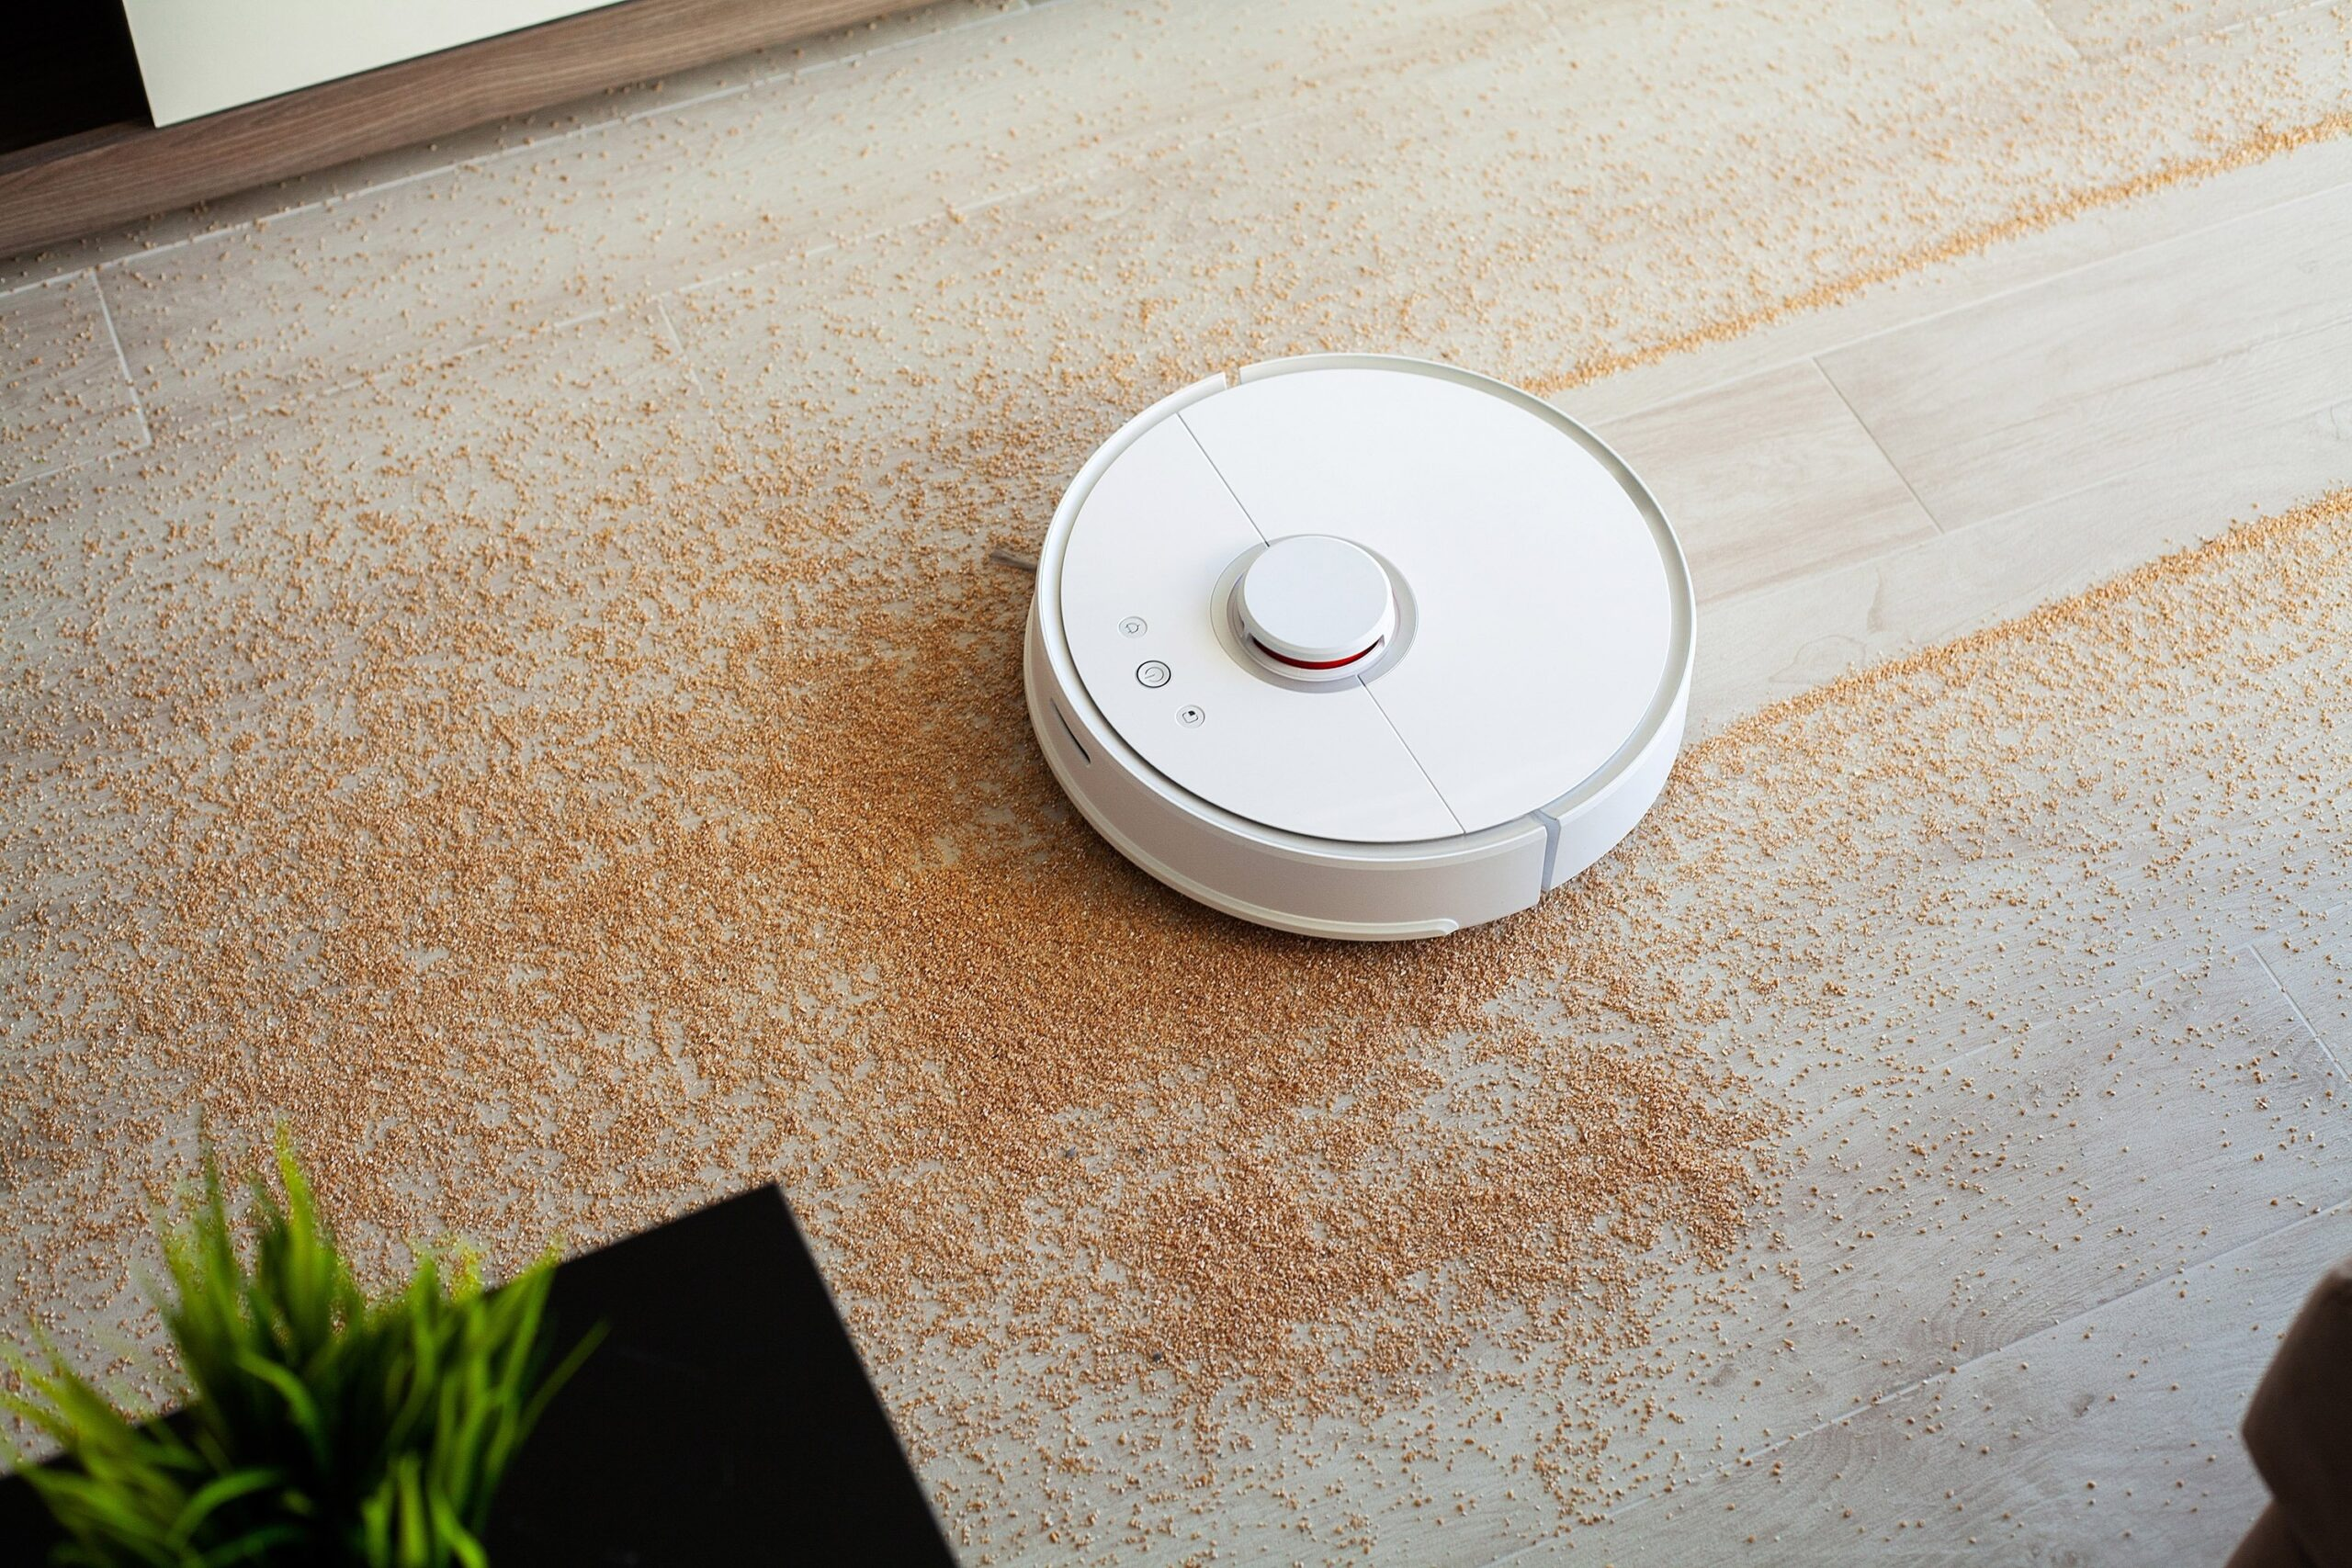 Vacuum Cleaner Robot, House Cleaning Activity Will Be Faster And Hassle-Free!